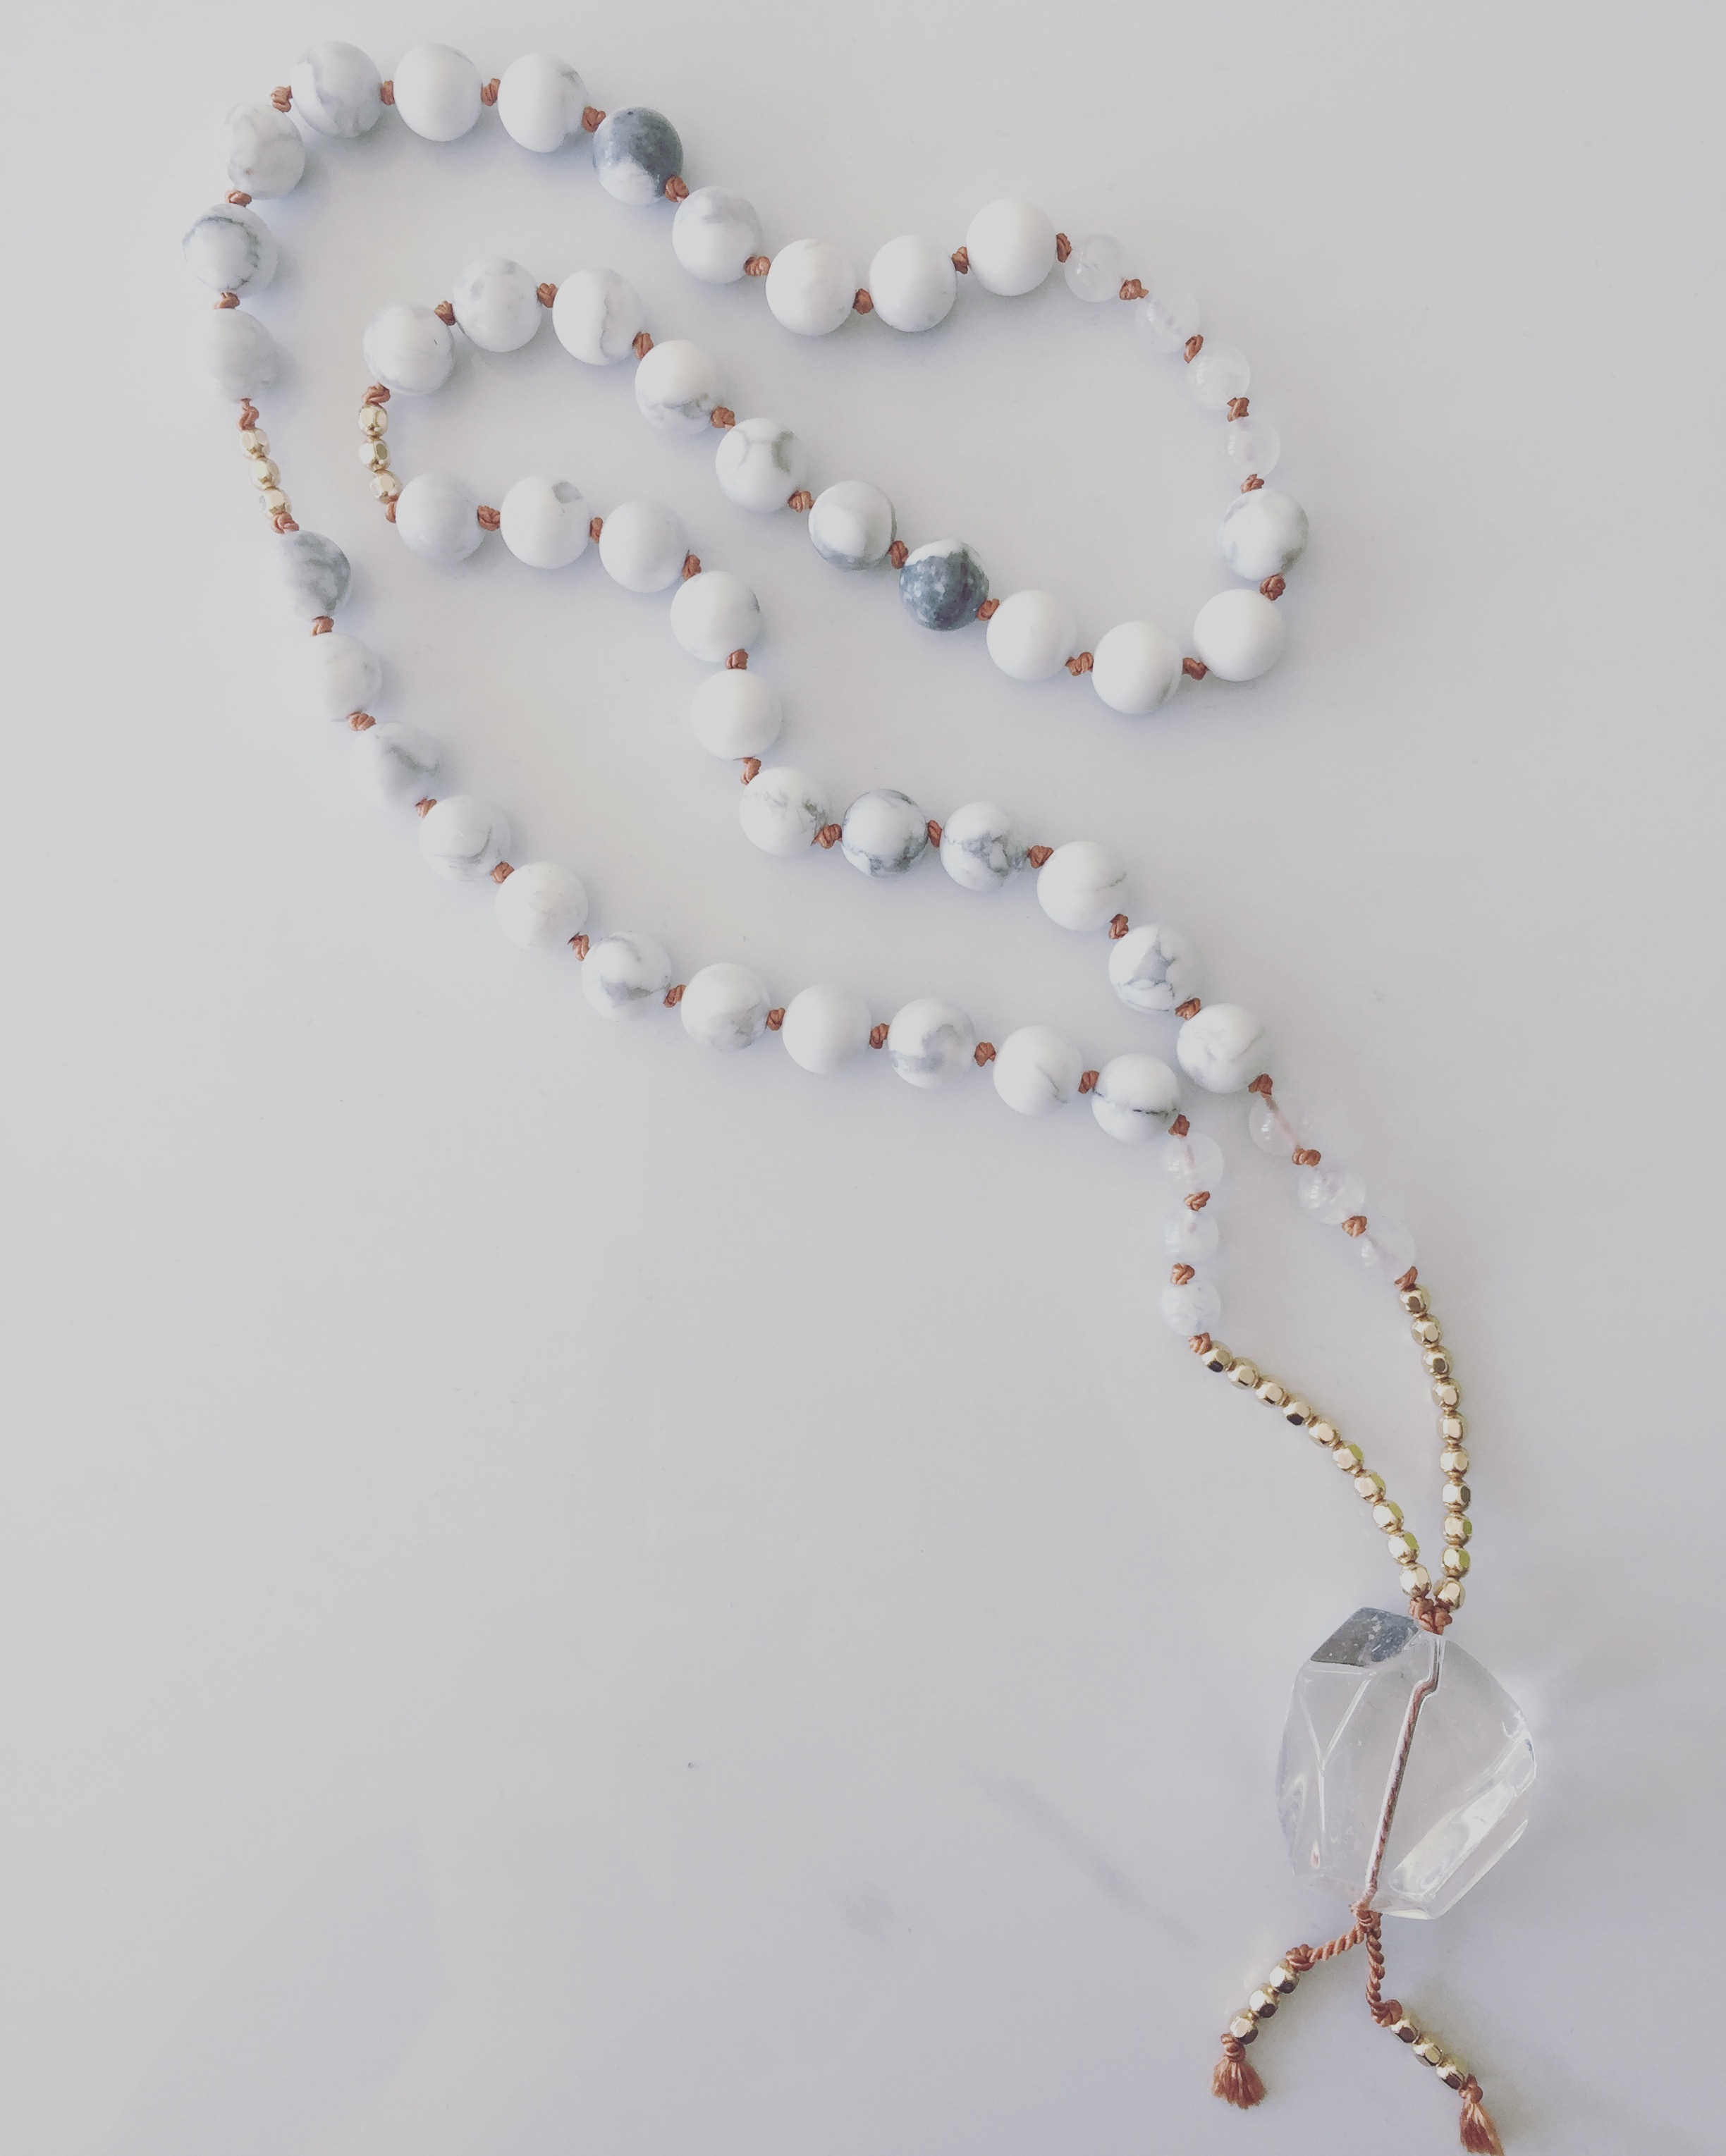 FEATURED MALADivine Feminine Mala - Your divine feminine is being asked to be loved and embraced. Howlite is the stone of the divine and collective conscious energy and tunes directly in with the mind. When you allow for peace and tranquility to be present in the logical mind, you truly hear what your intuition is saying. Moonstone supports you in using your five senses to guide your attention inward and connect with your intuitive wisdom. Just as the moon sheds light on the deep mysterious ocean waters, the guiding light of the divine feminine guides you to be in introspection. This gives you space to balance male / female and emotional / intellectual energies within.STONES | moonstone, howlite, and clear crystal quartzMANTRA | I am a wise, sovereign queen who knows when to discern logic from intuition.SHOP NOW >